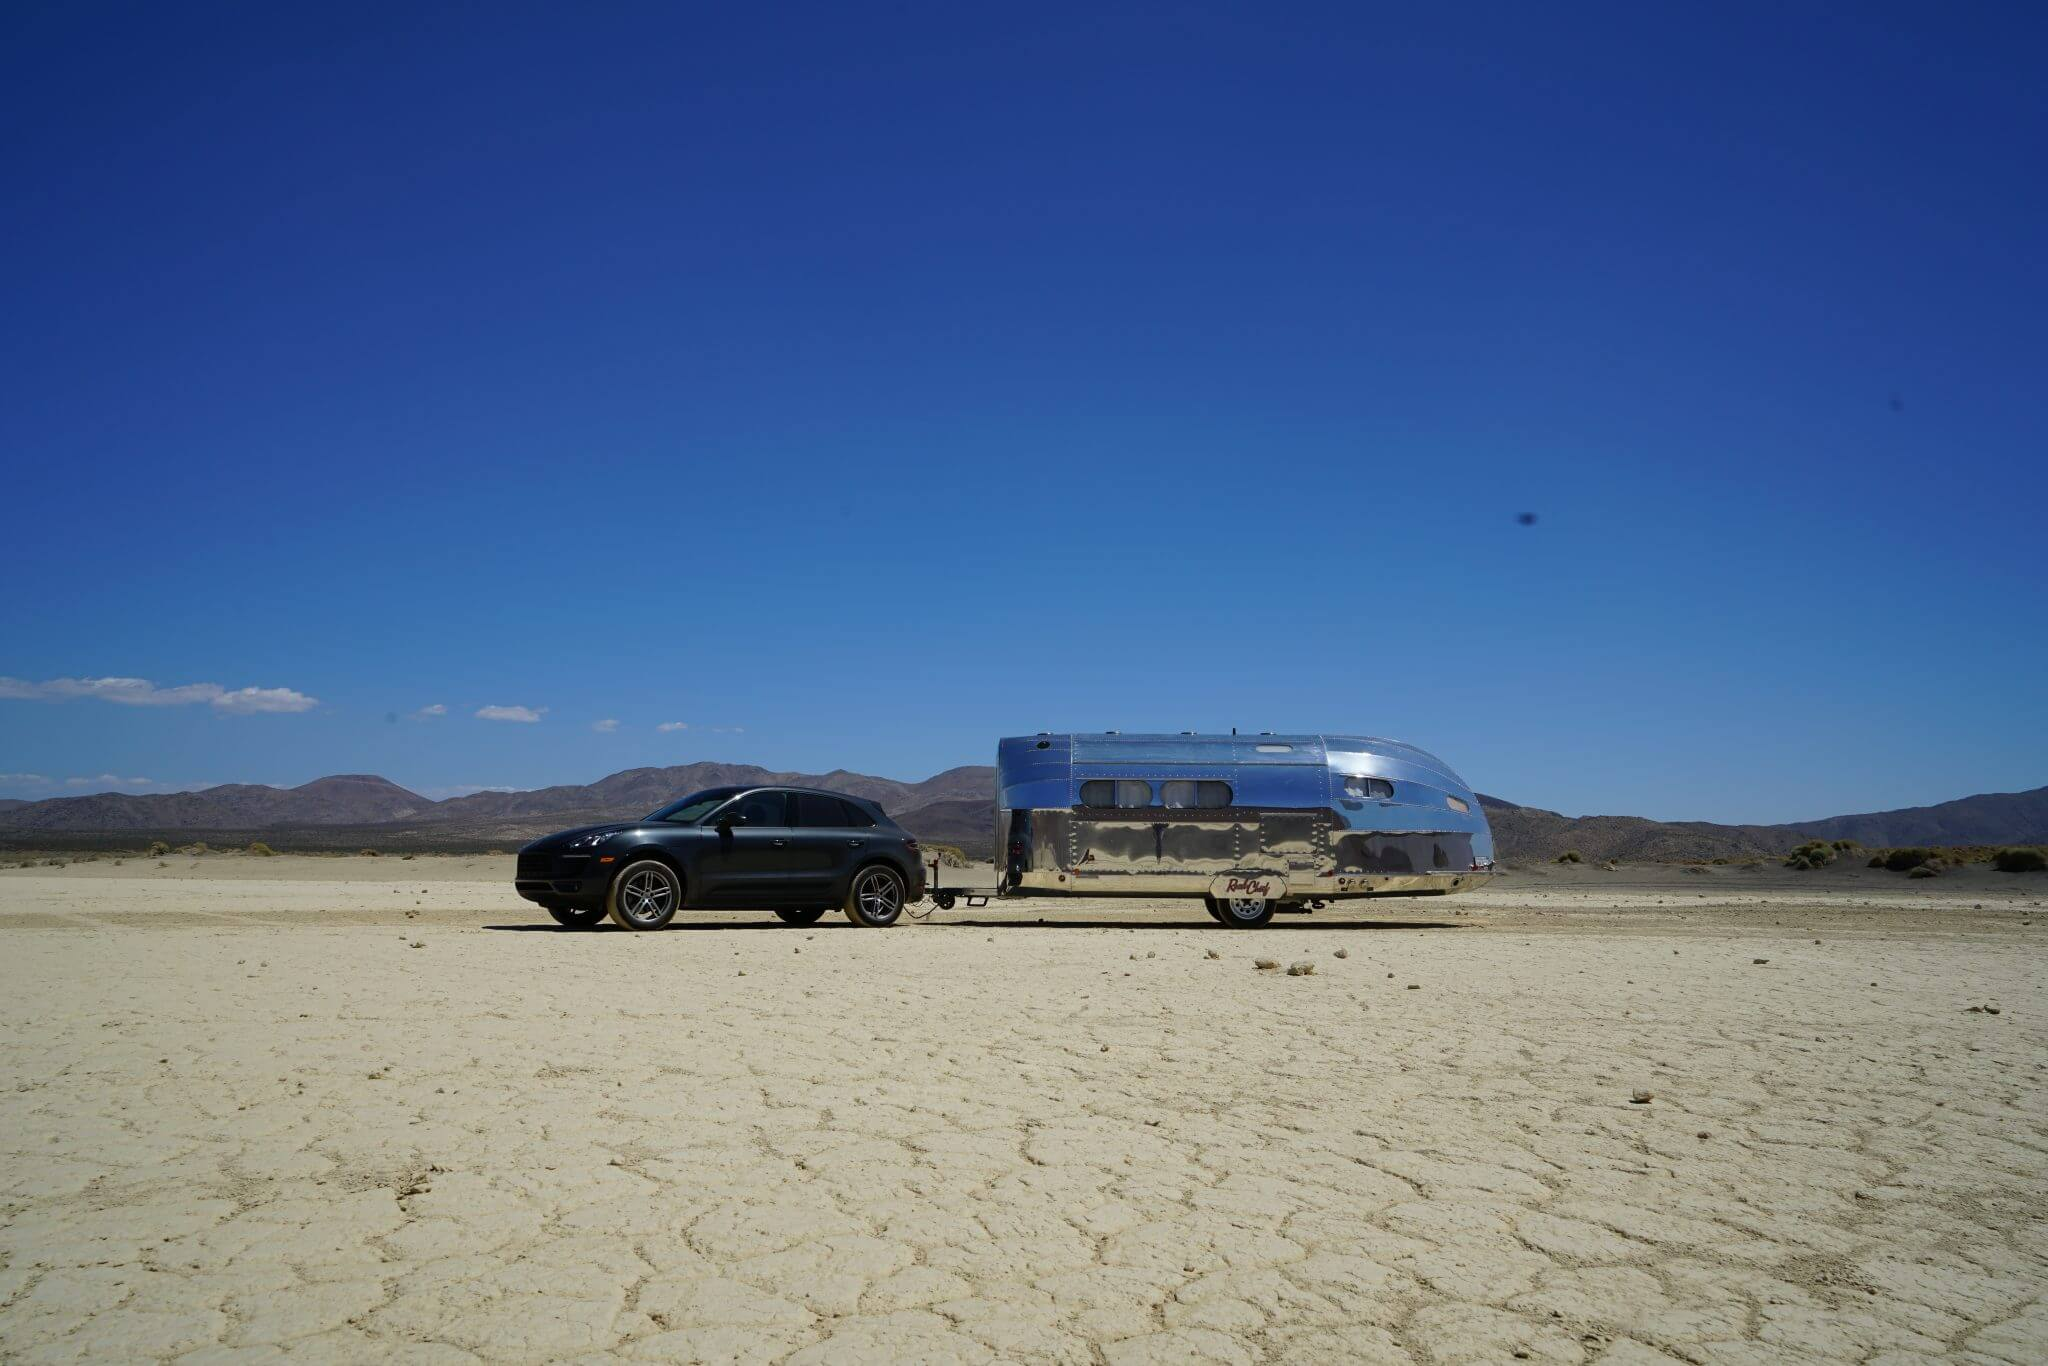 The new Road Chief is respectful to the original design